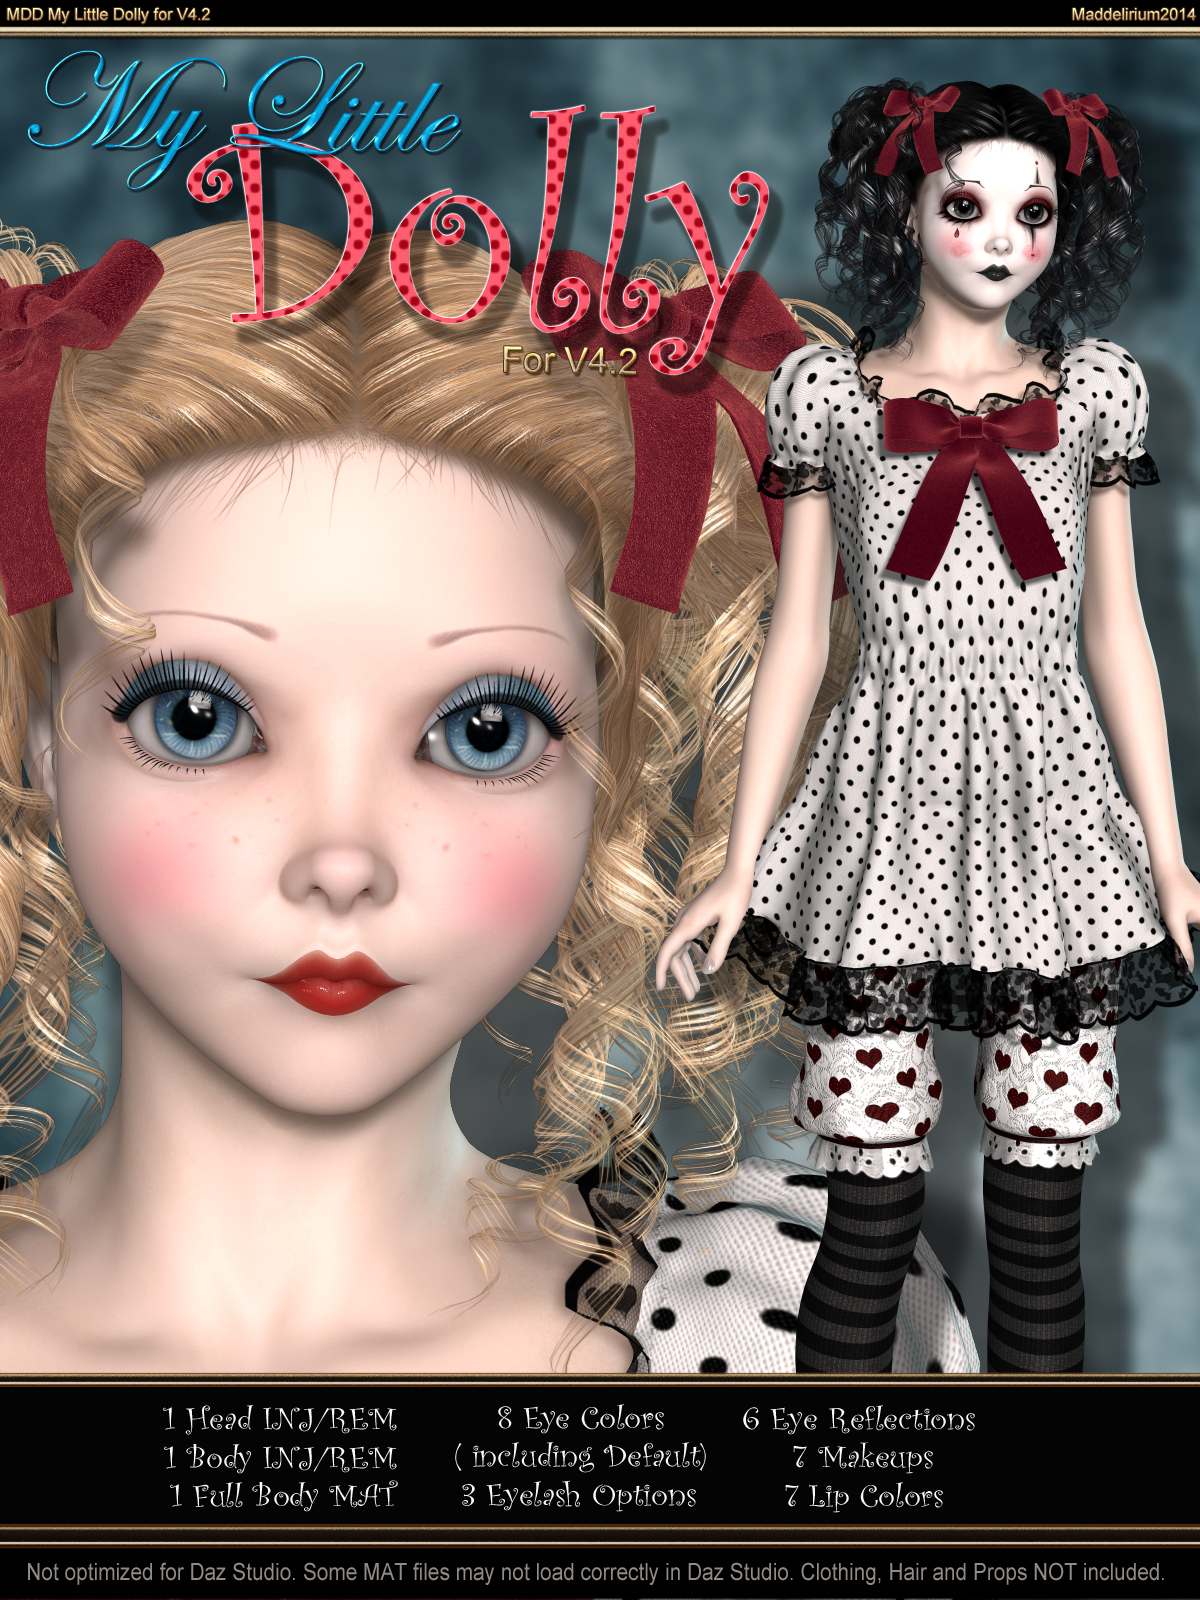 MDD My Little Dolly for V4.2